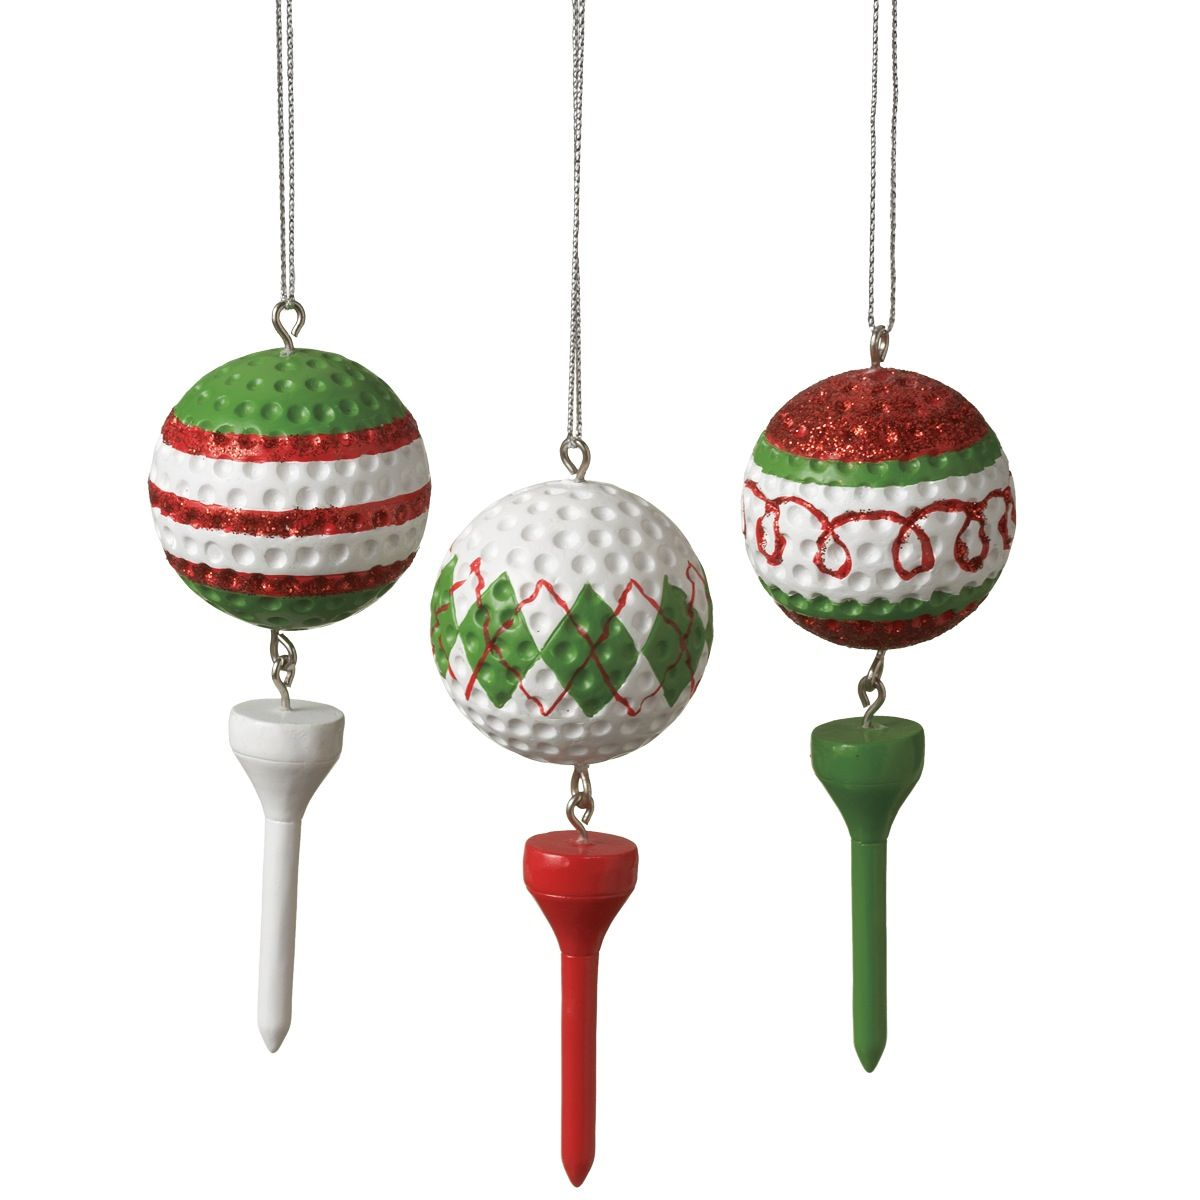 Golf Ball & Tee Ornaments                                                                                                                                                      More